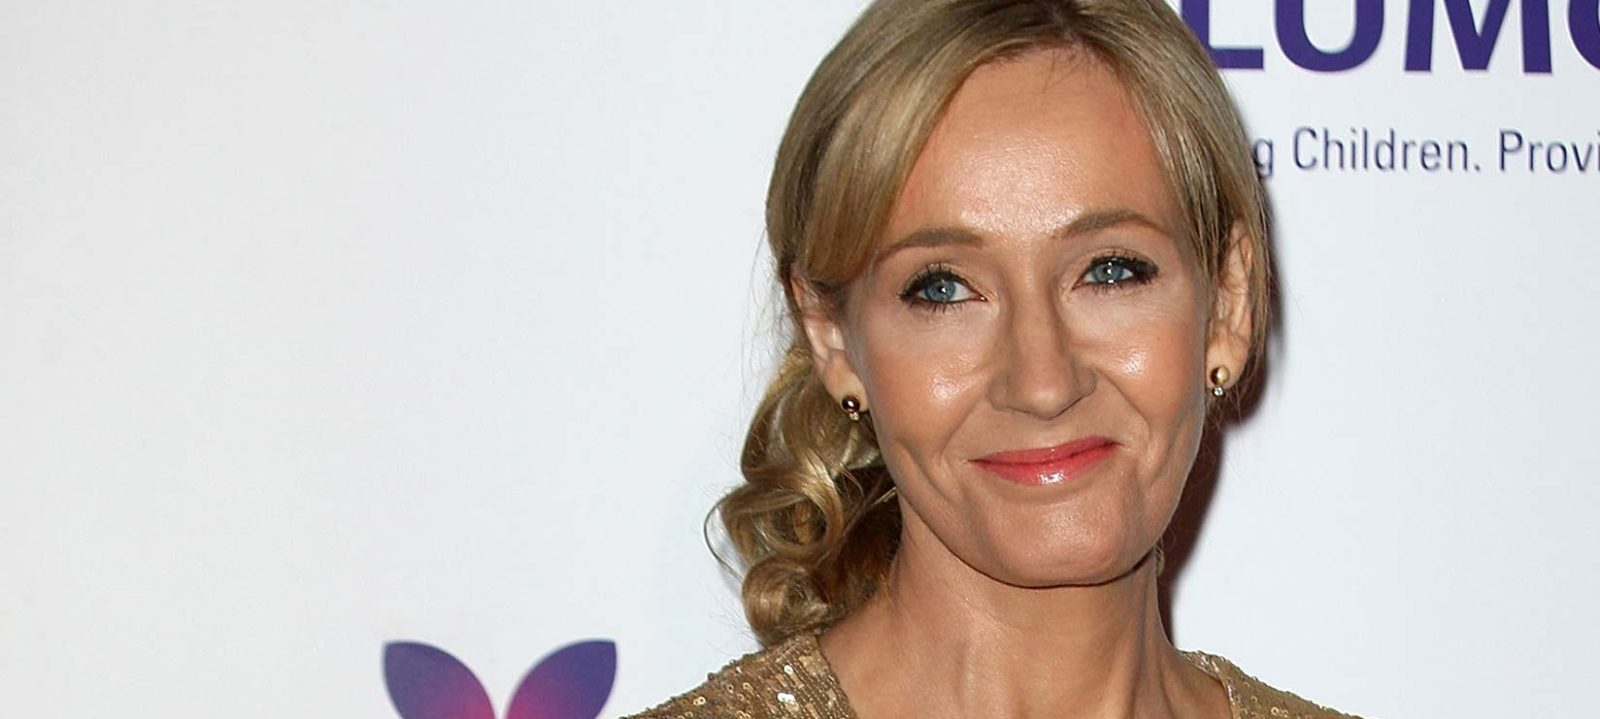 anglo_2000x1125_jk_rowling_fundraiser